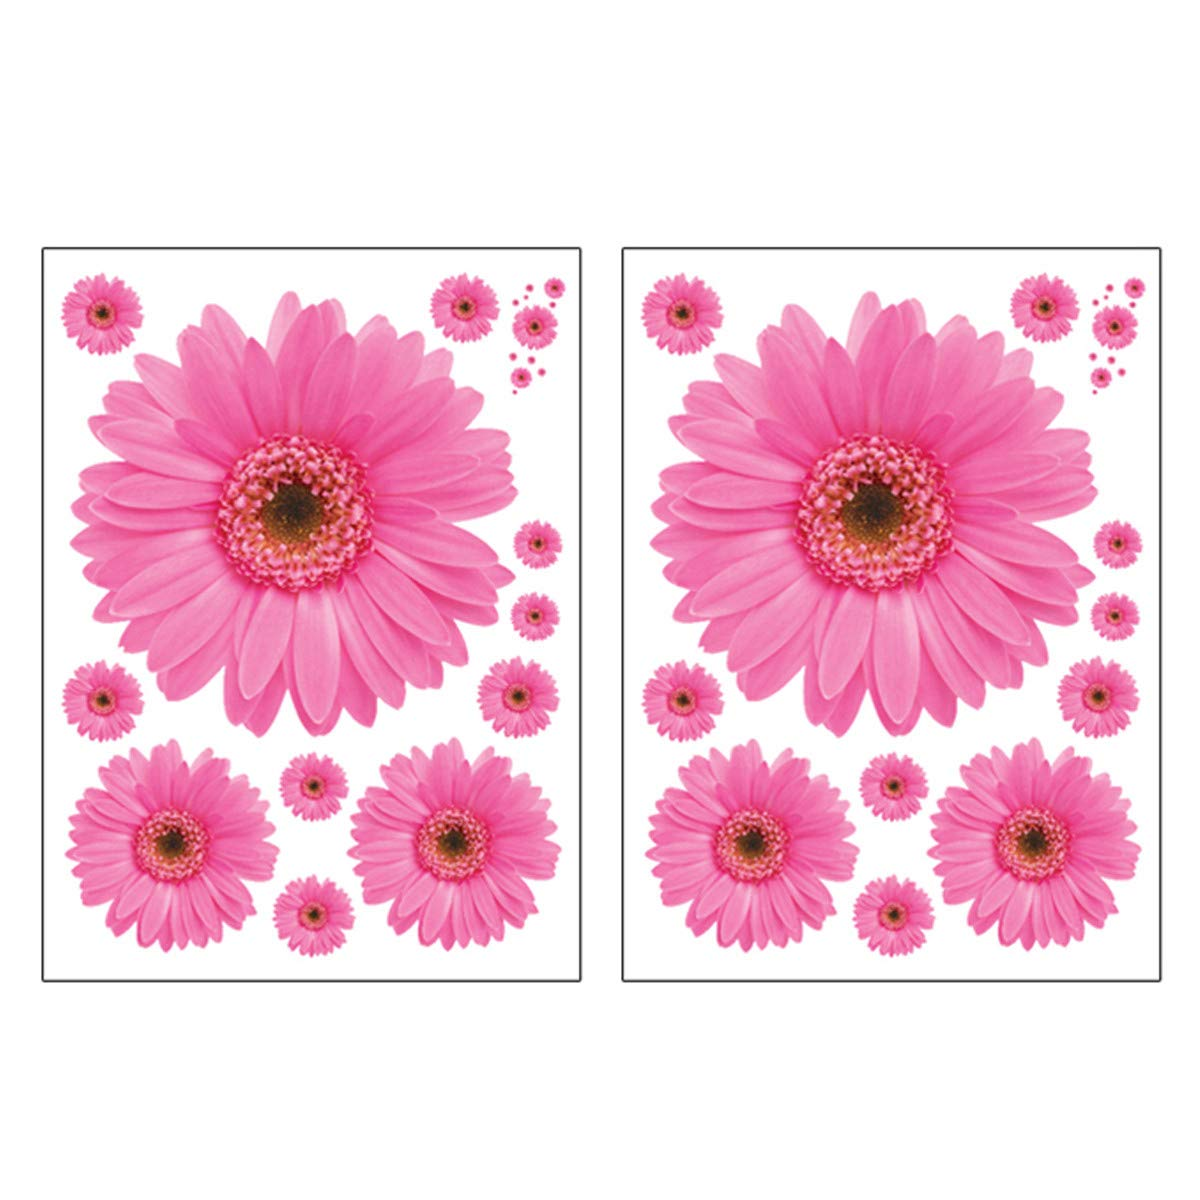 VIIRY 2Sets Sunflower Wall Decals 3D Yellow Red Pink Daisy Flowers Wall Stickers Peel and Stick Removable Wall Art Home Decor for Kids Room Living Room Bedroom Nursery Stickers Decoration(Pink)